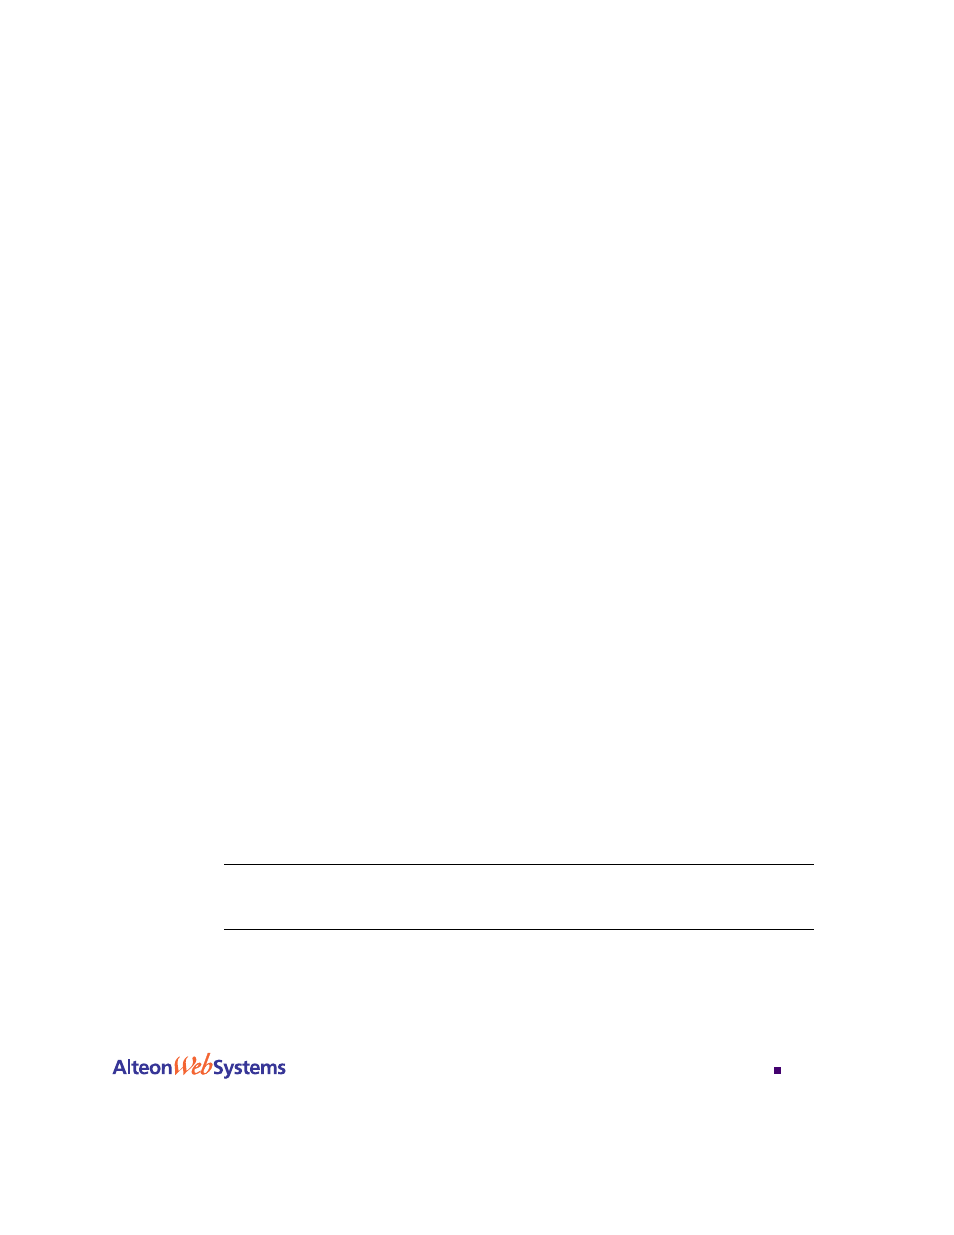 Real time streaming protocol slb, How rtsp server load